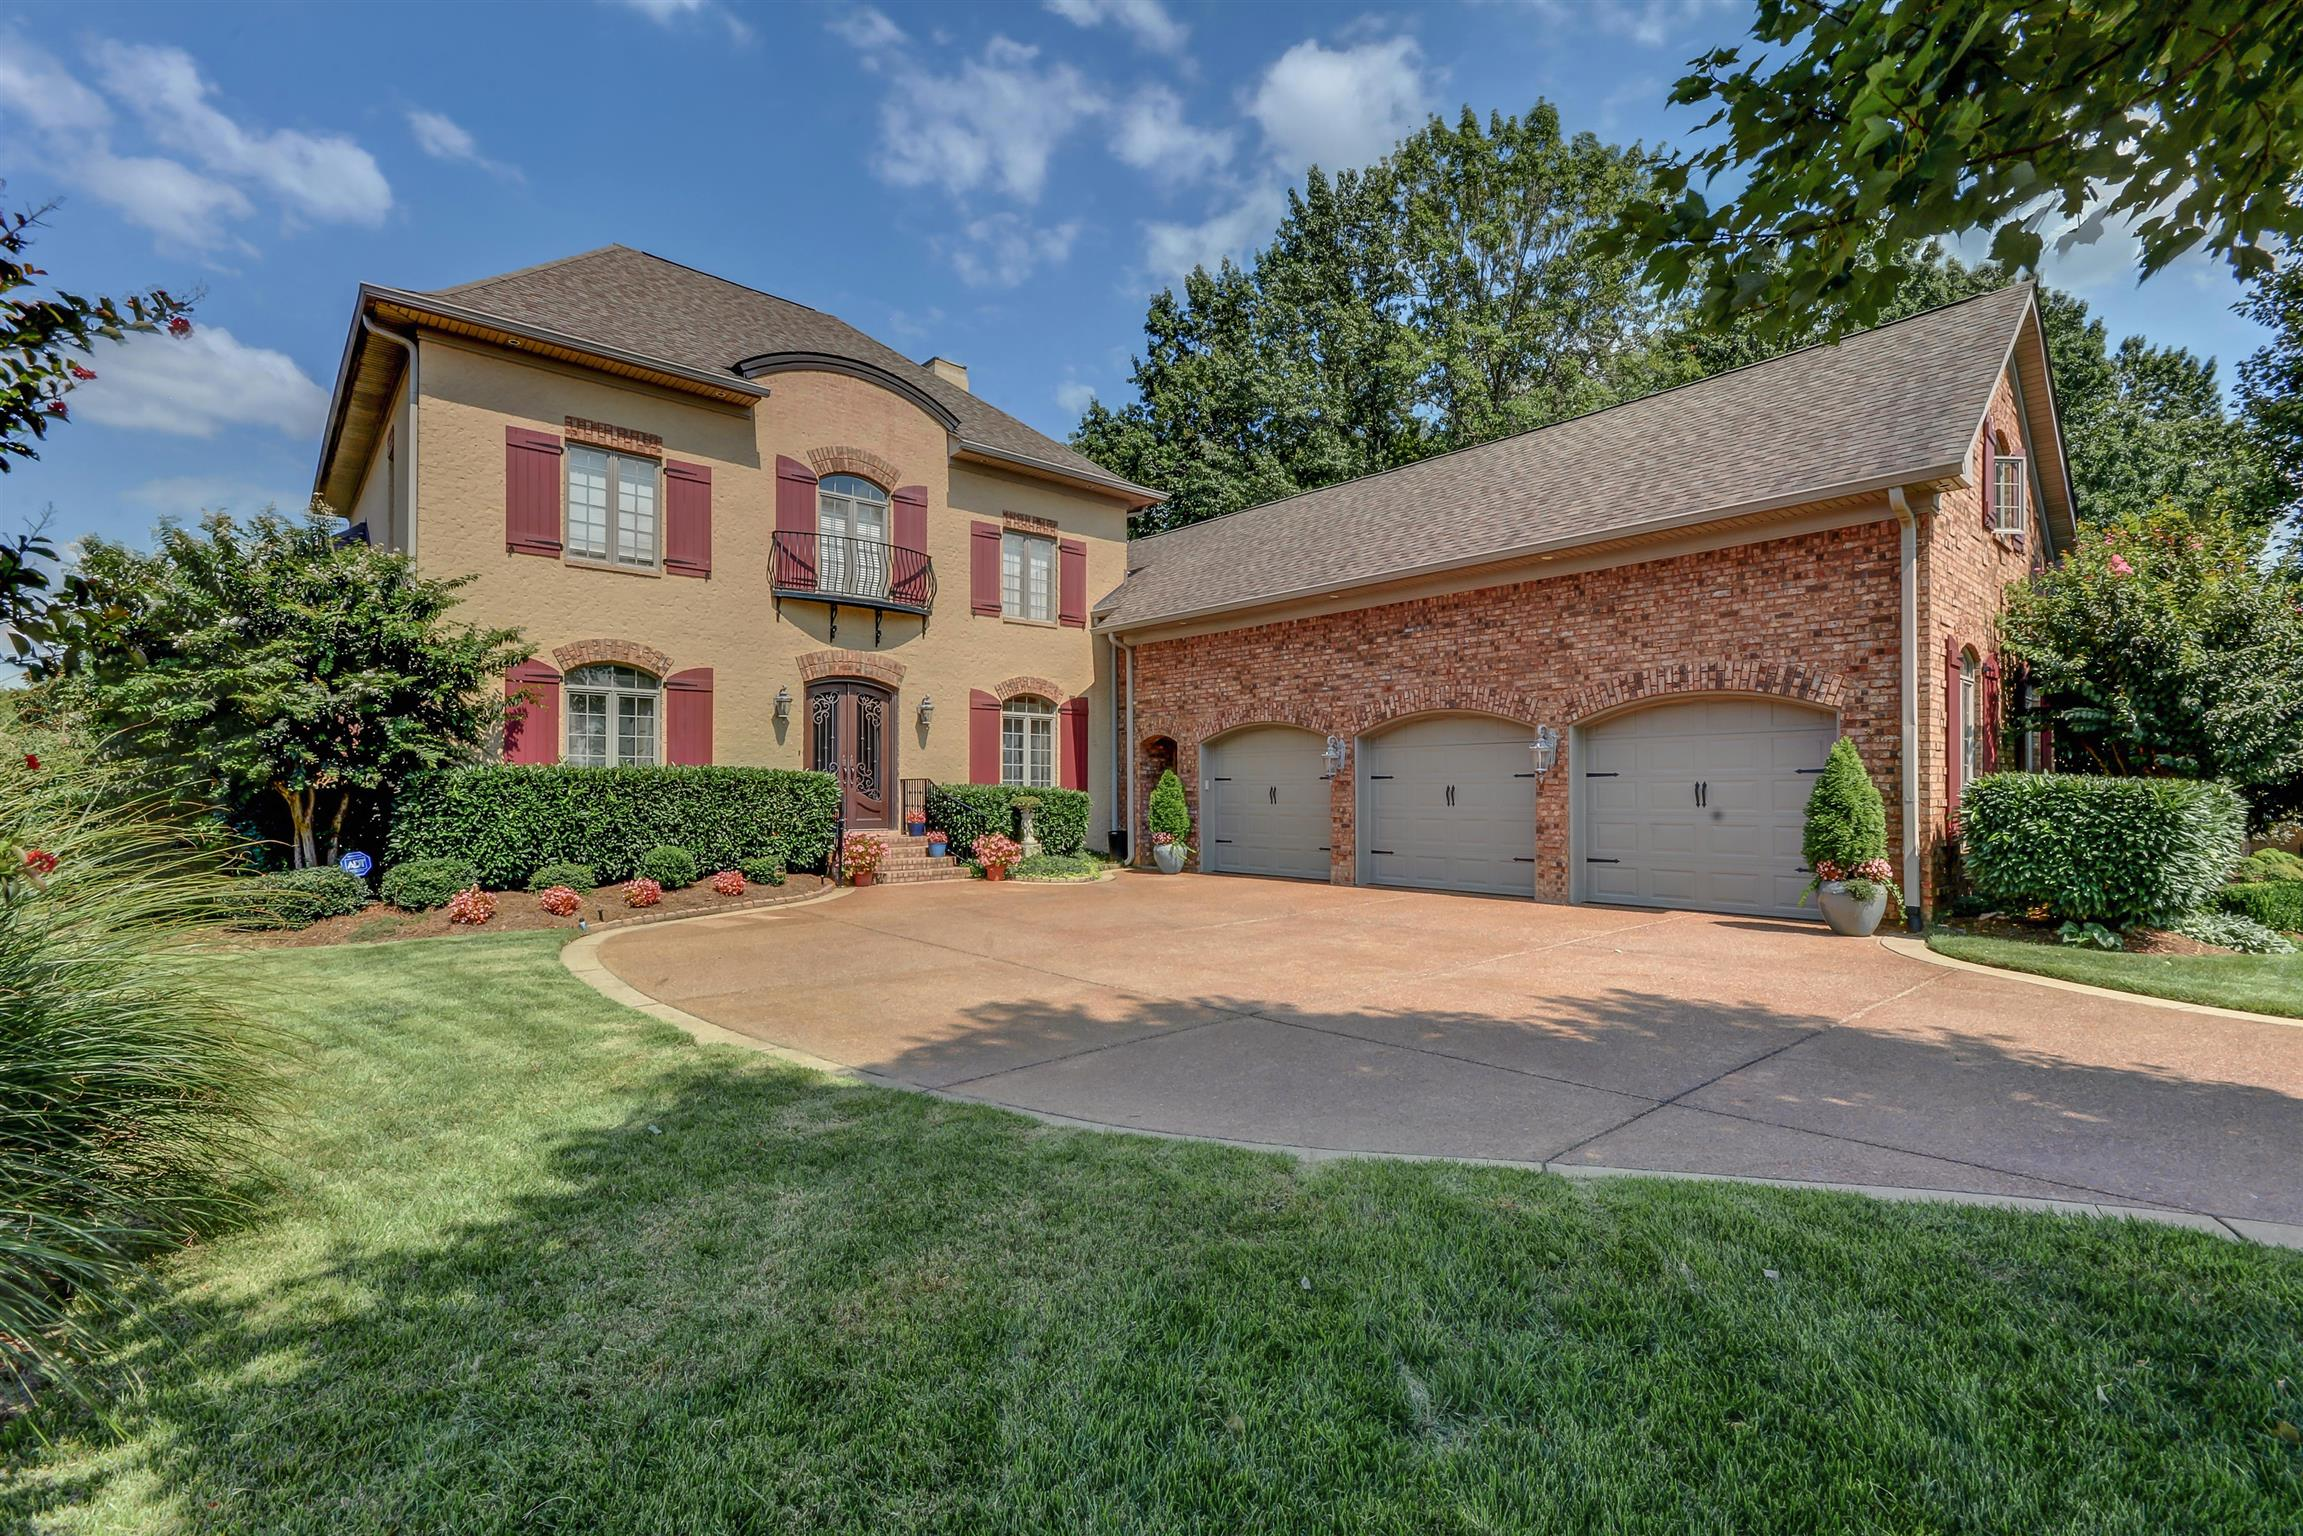 900 Plantation Way, one of homes for sale in Gallatin